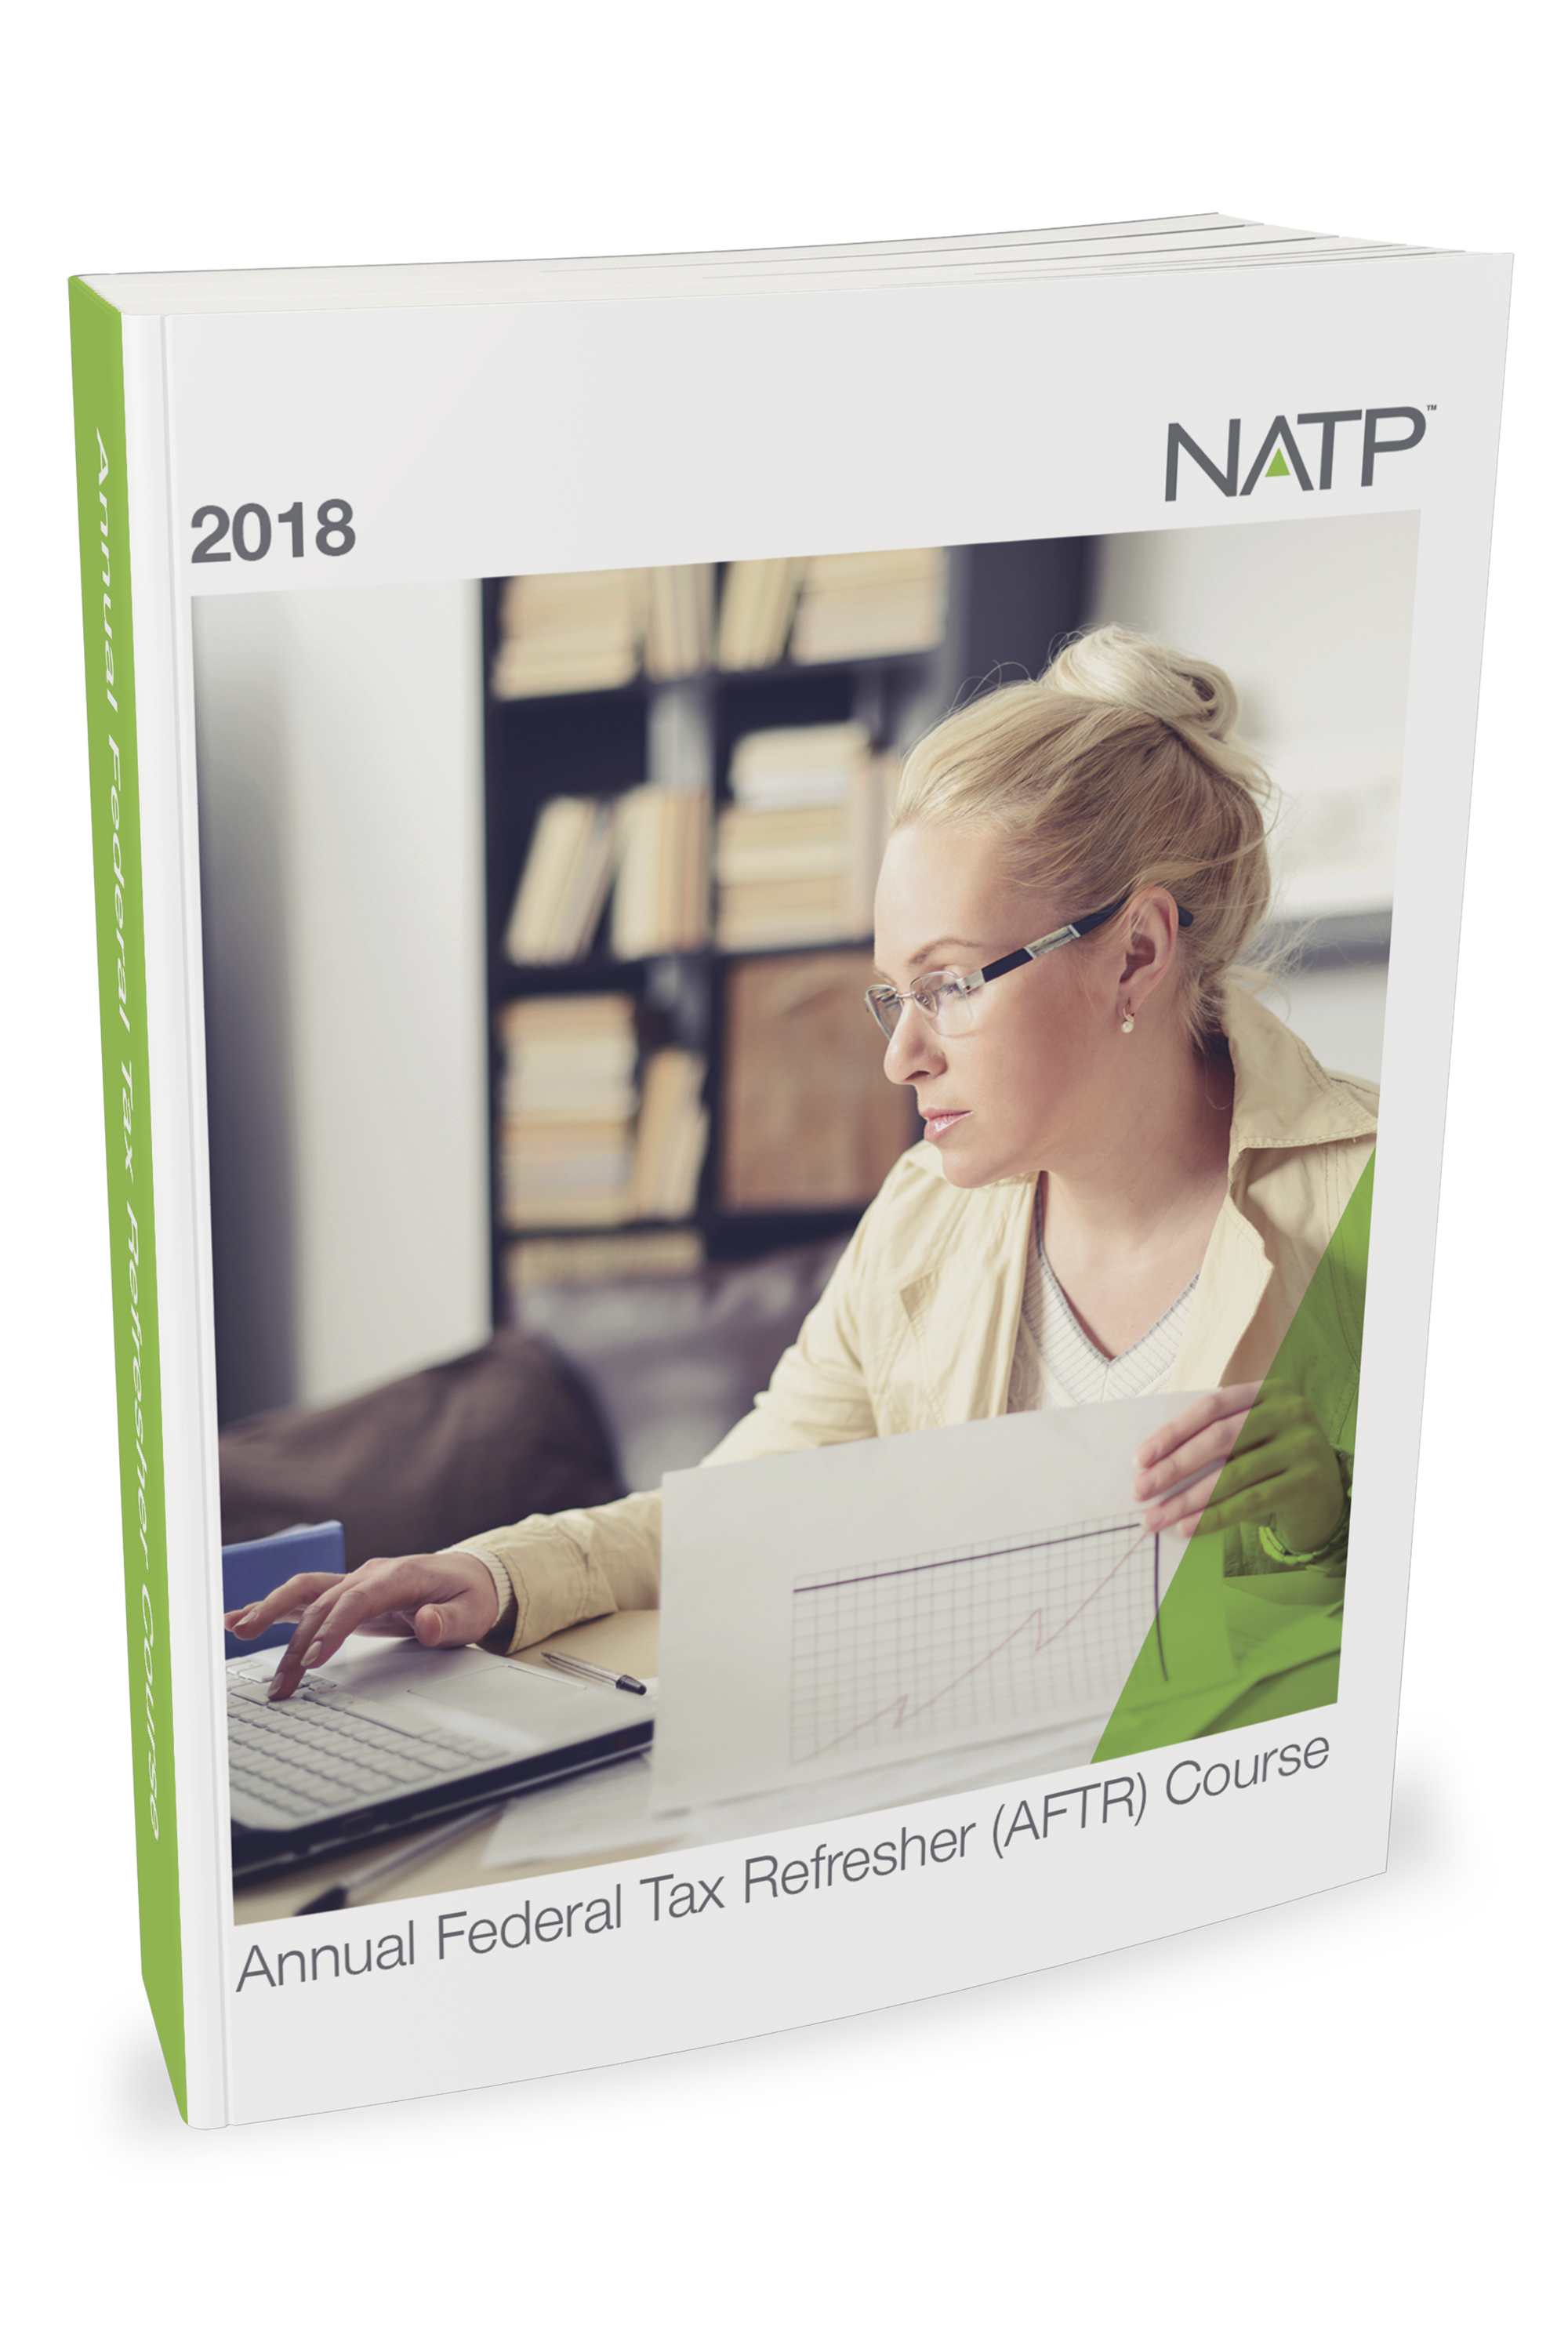 Annual Federal Tax Refresher Course Textbook (2018) - #4840